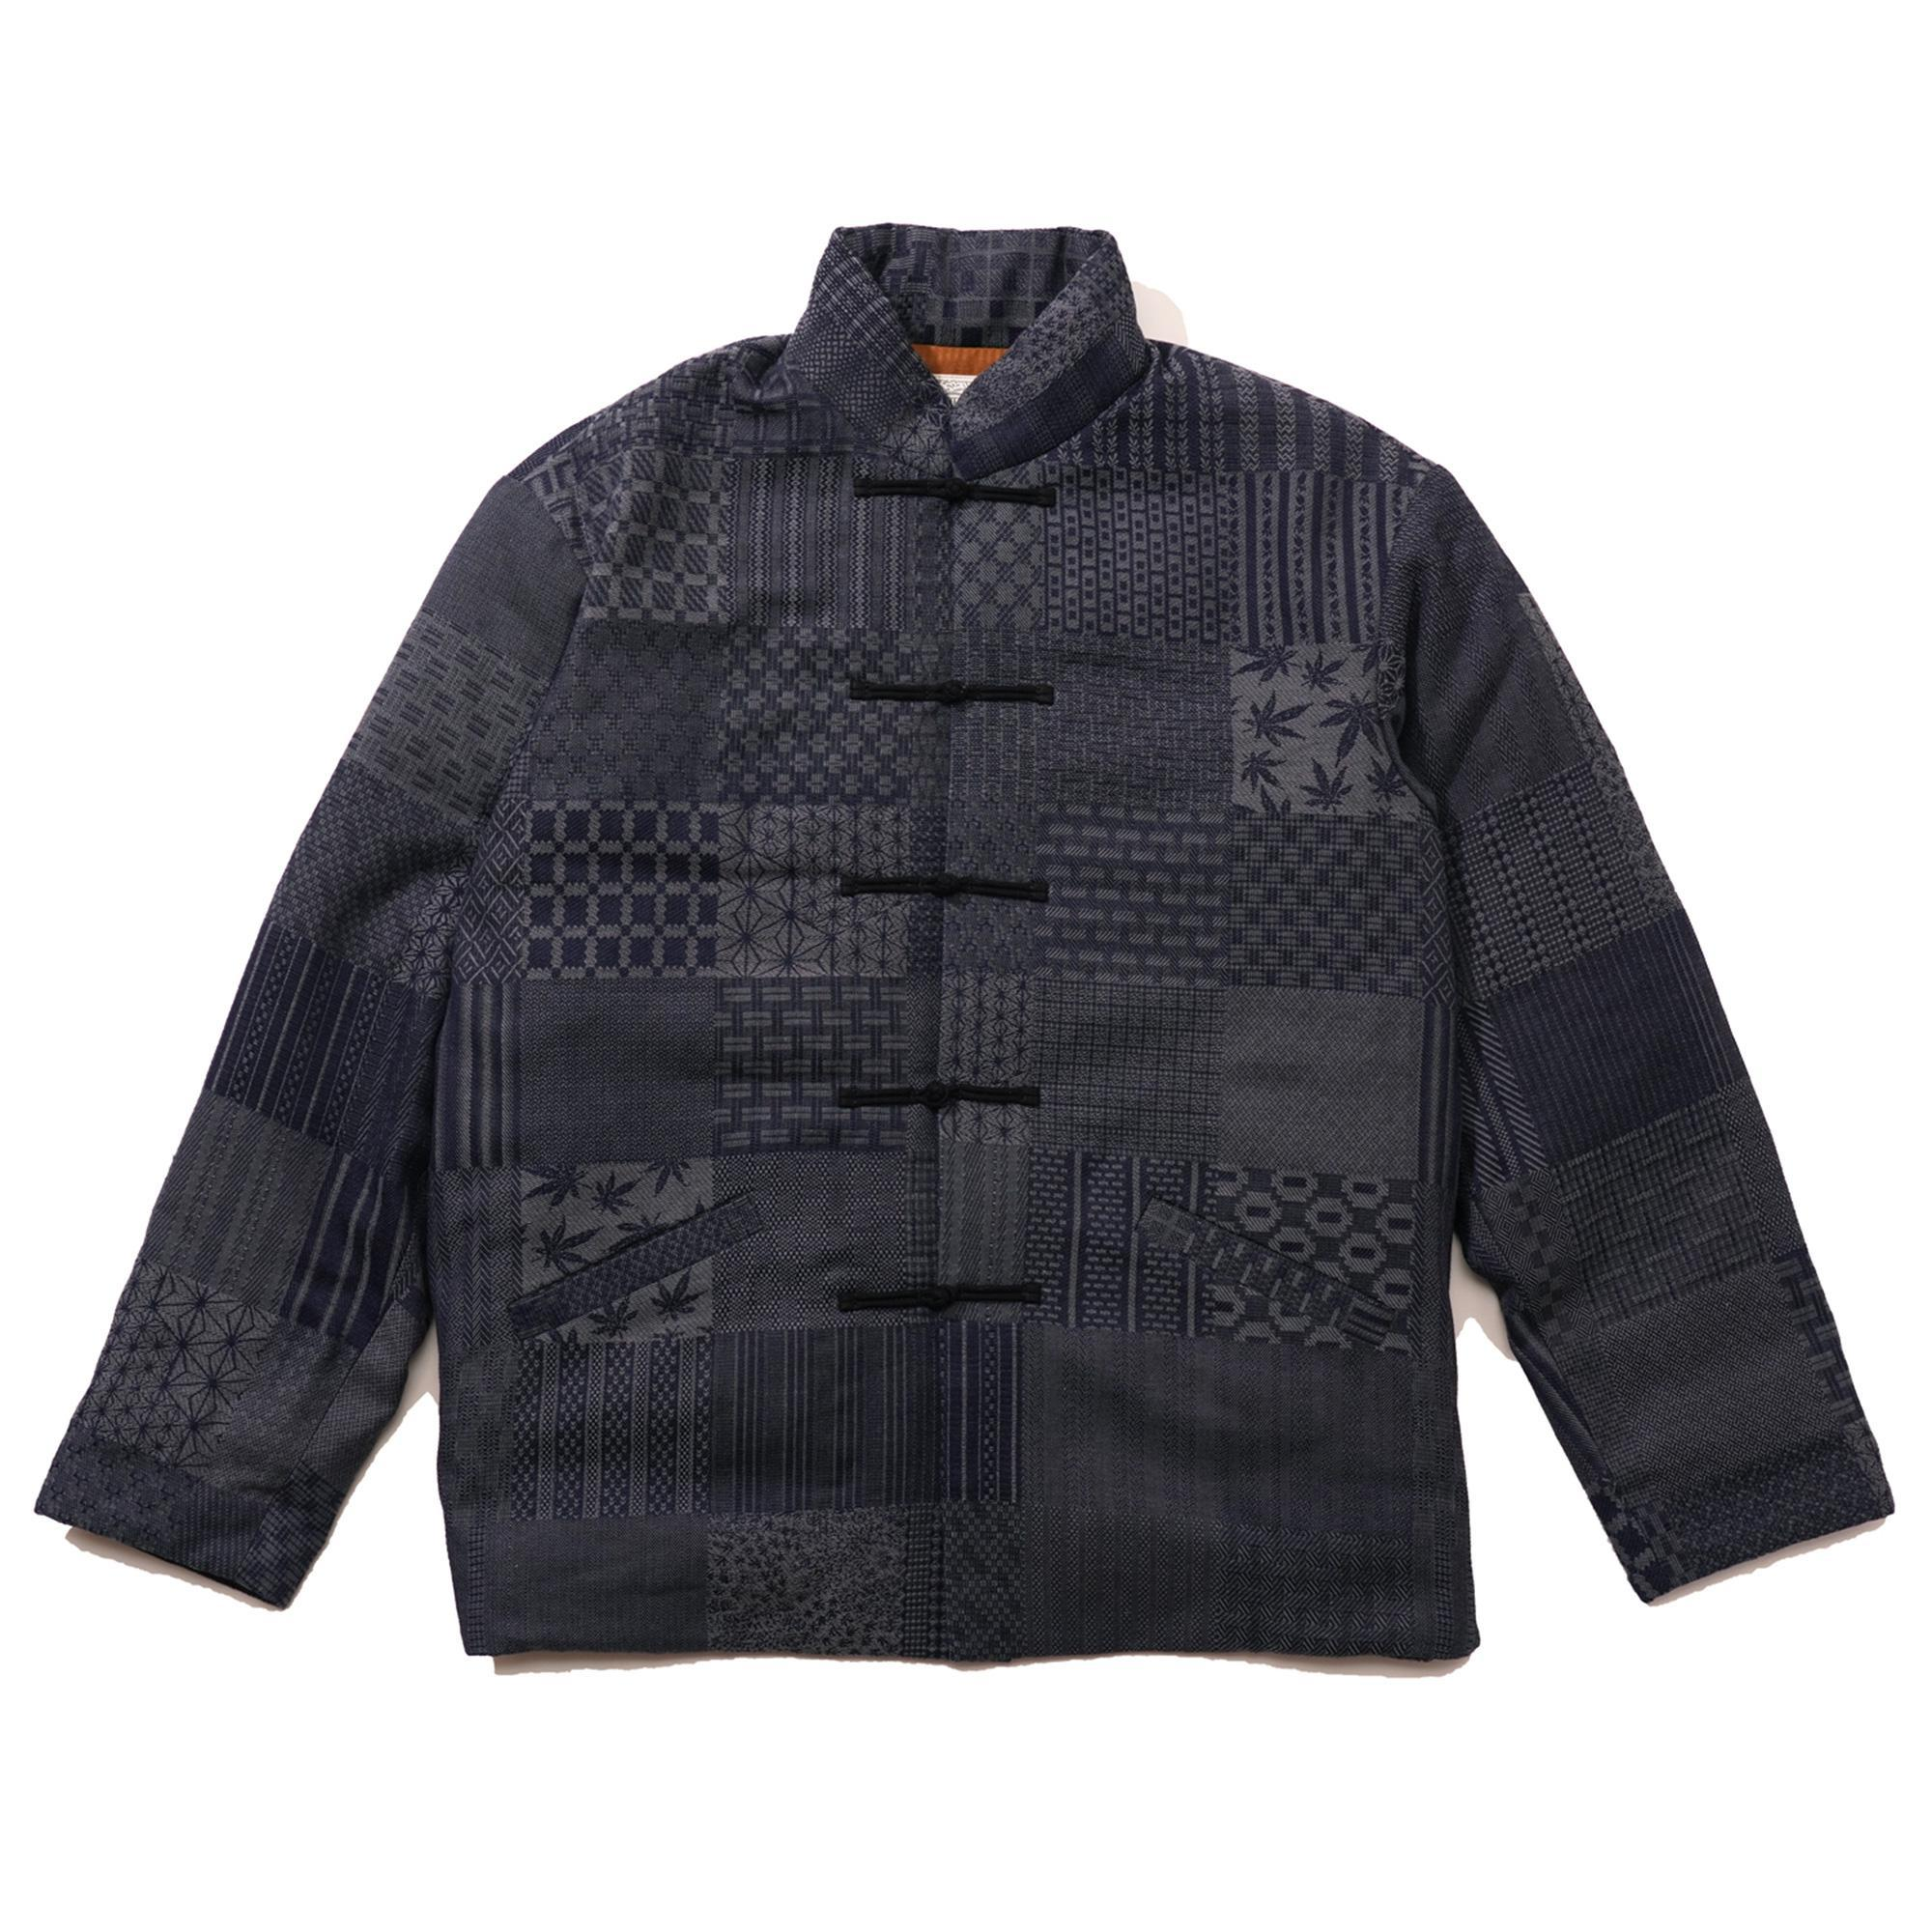 TONG POO DOWN JACKET/JAPANESE PATTERN PATCHWORK